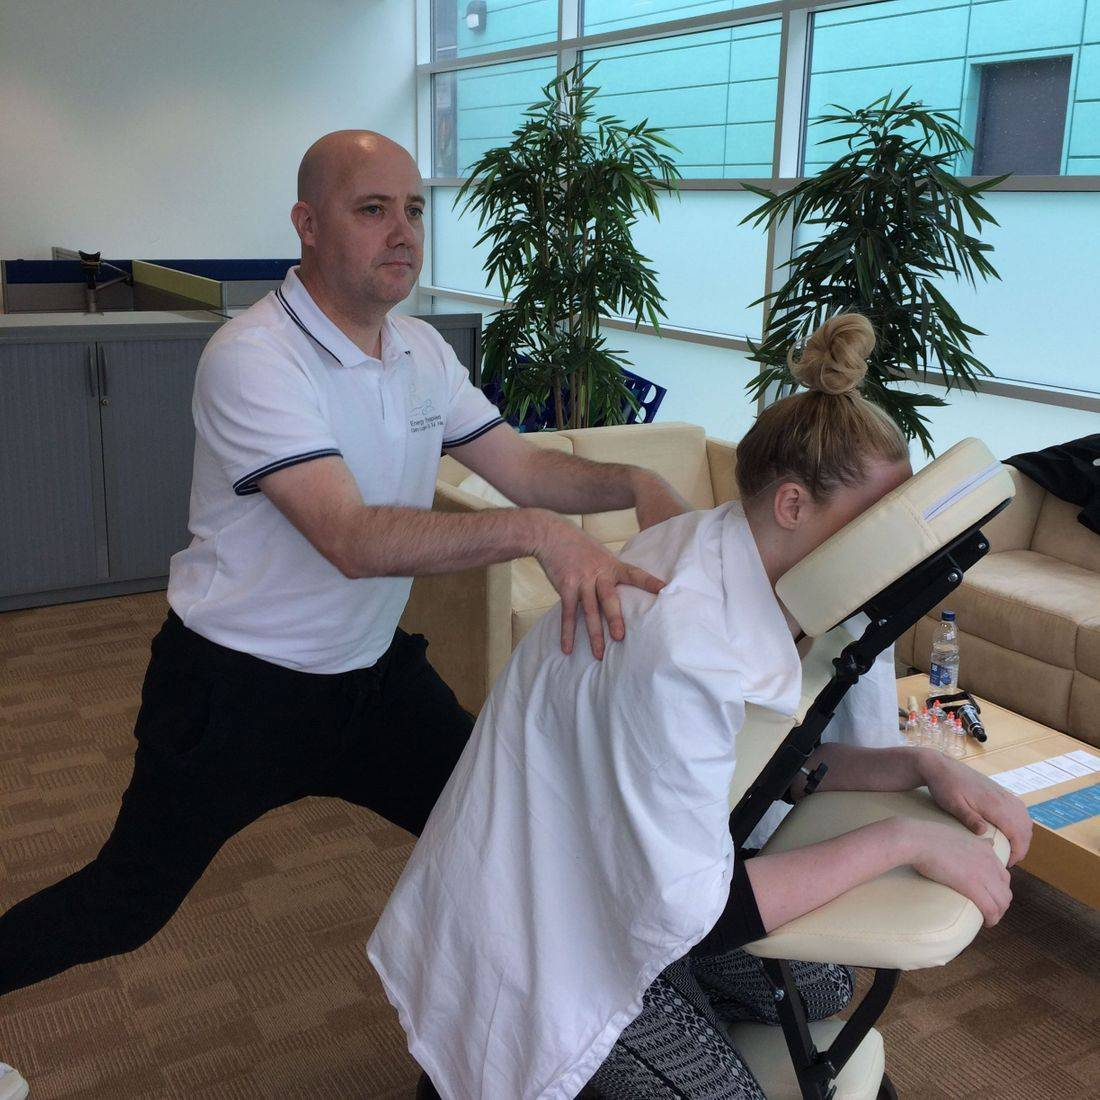 Seated Massage at work